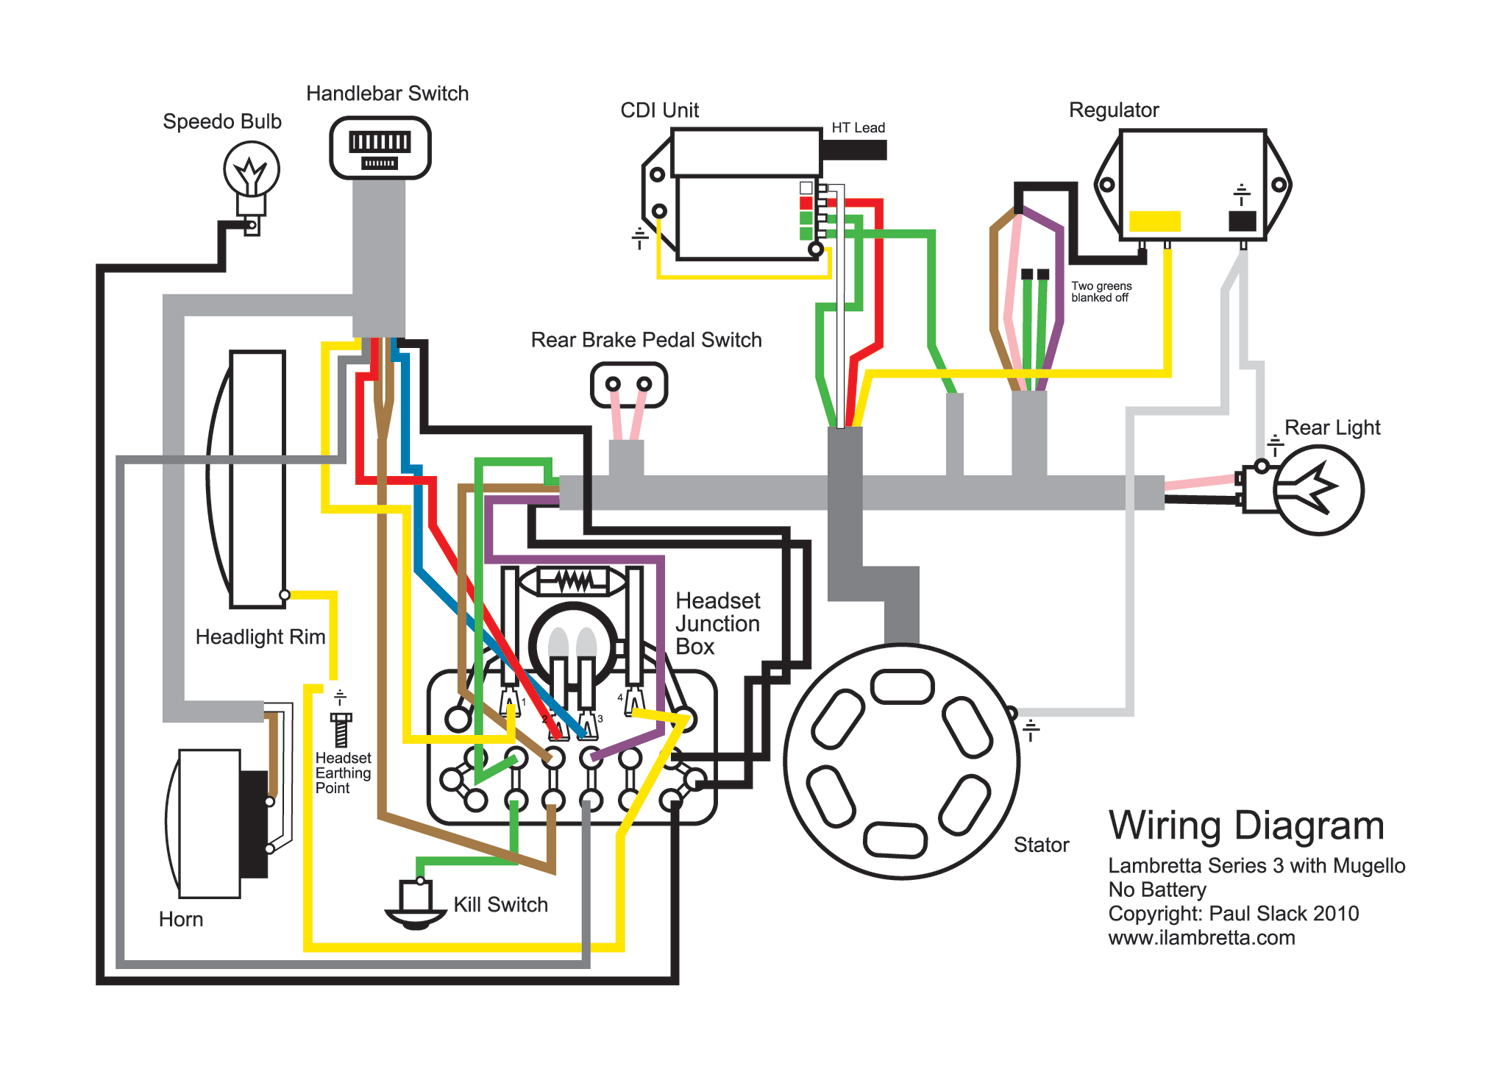 12v series wiring diagram wiring diagram lambretta restoration wiring diagram for mugello 12 volt upgrade rh lambrettarestorations blogspot com 1 wire alternator wiring diagram 12v generator wiring asfbconference2016 Choice Image